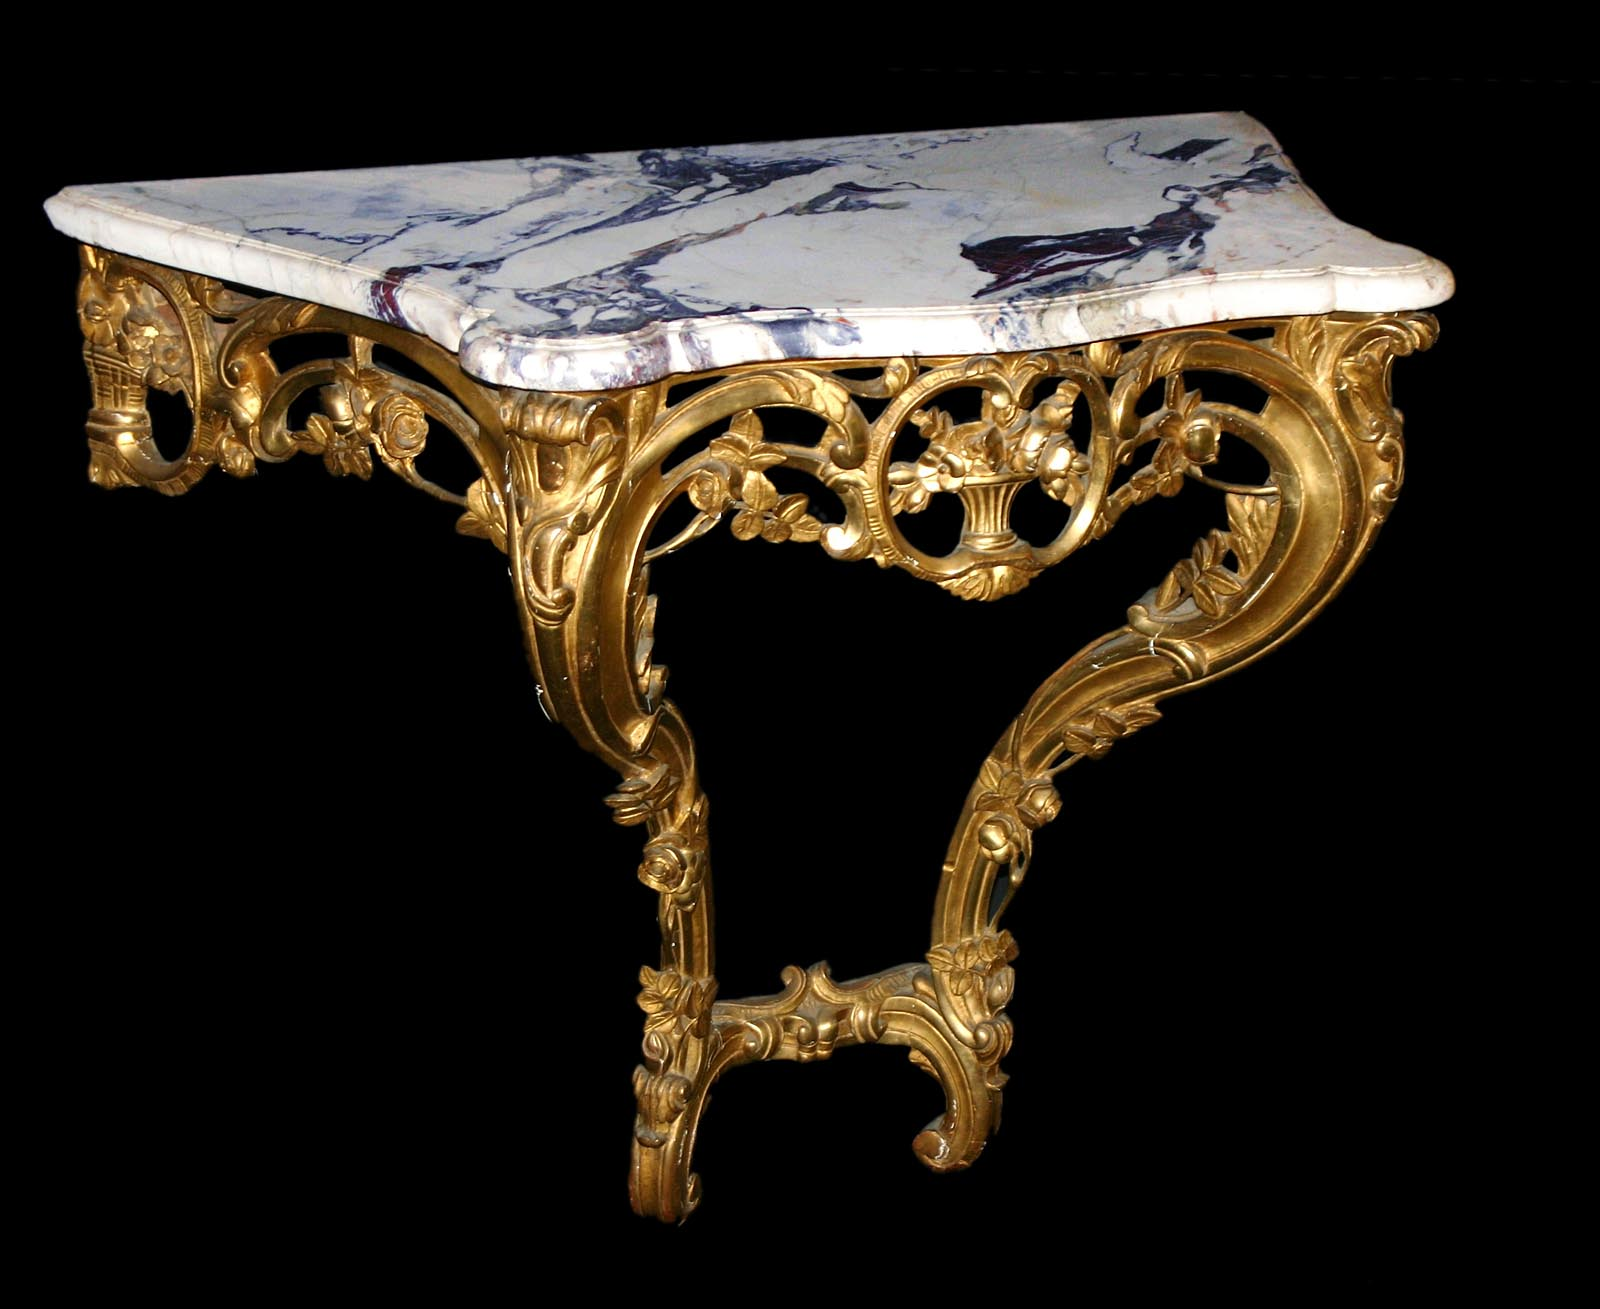 Provenal beaucaire louis xv period carved giltwood console table french provenal beaucaire louis xv period carved giltwood console table geotapseo Images